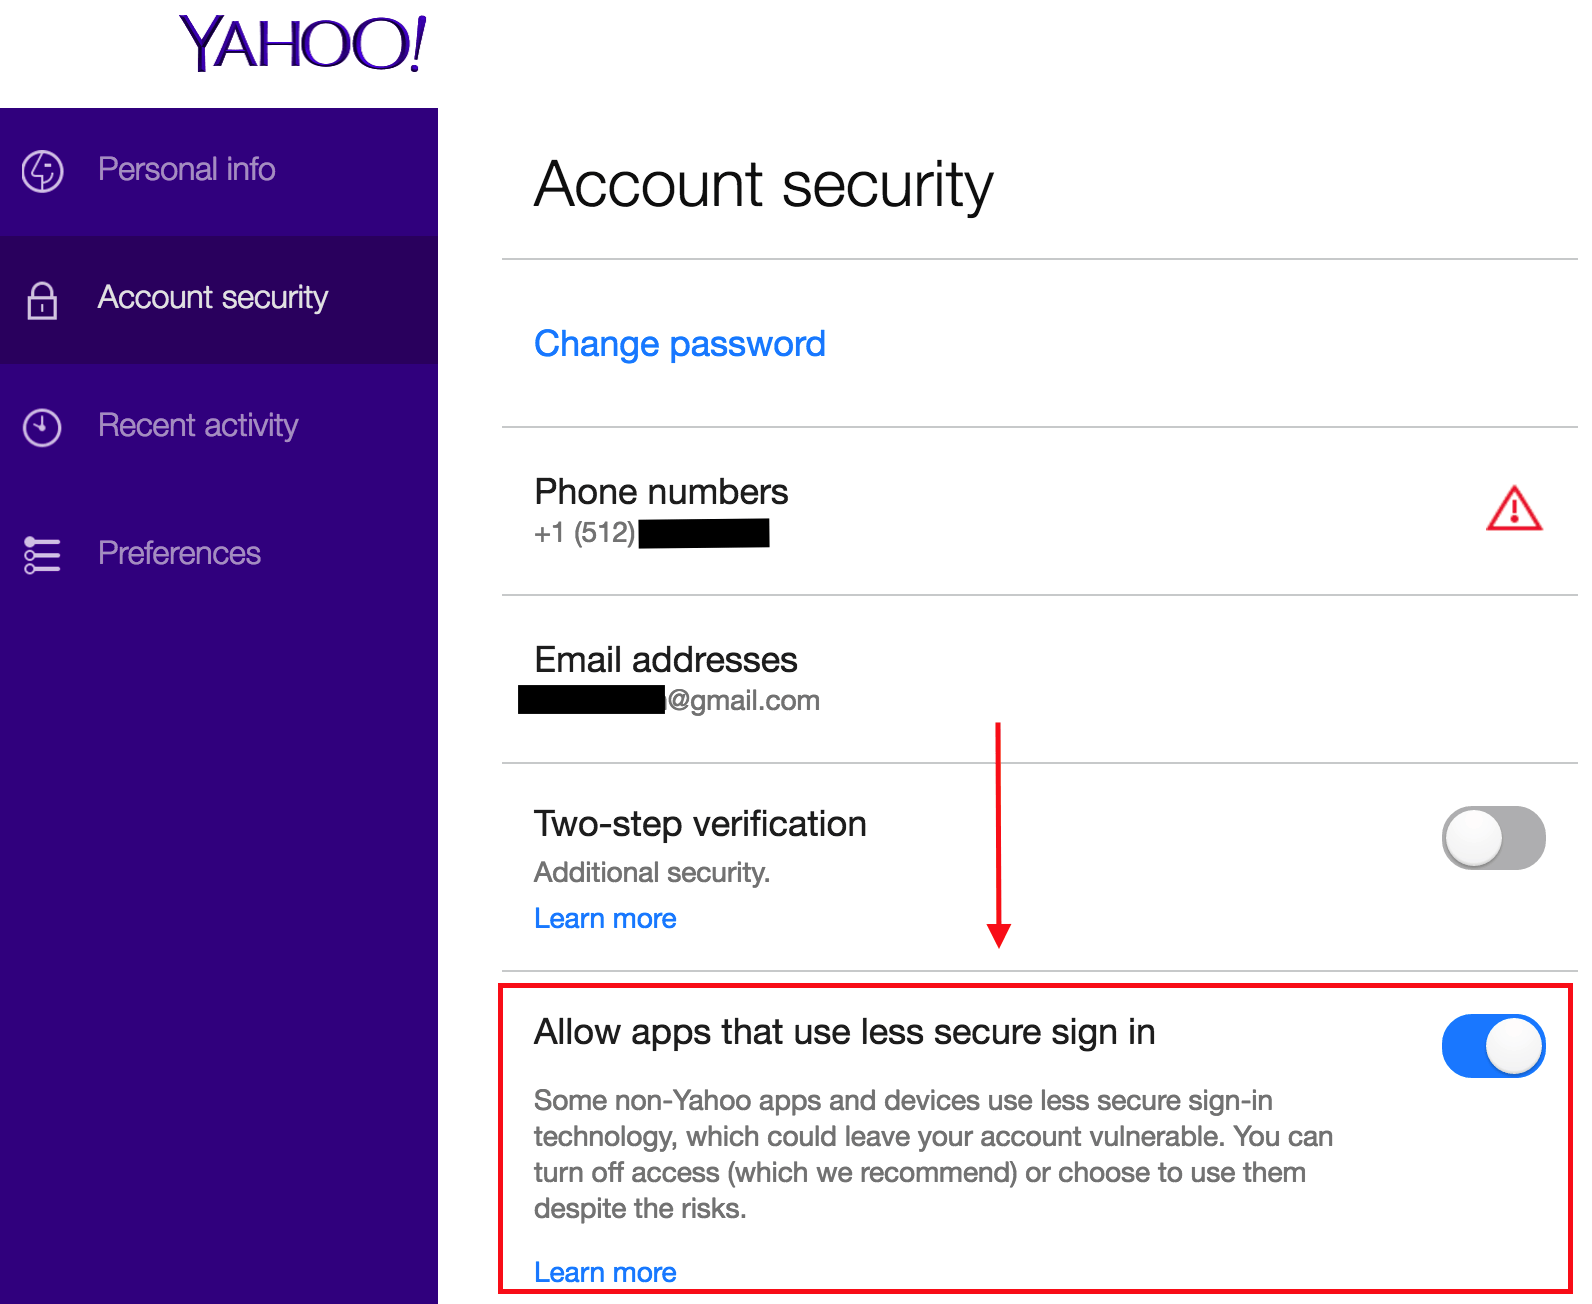 Since The New Setting Was Not Retroactively Applied To Existing Accounts,  The Vast Majority Of Yahoo! Users Are Able To Connect To Applications